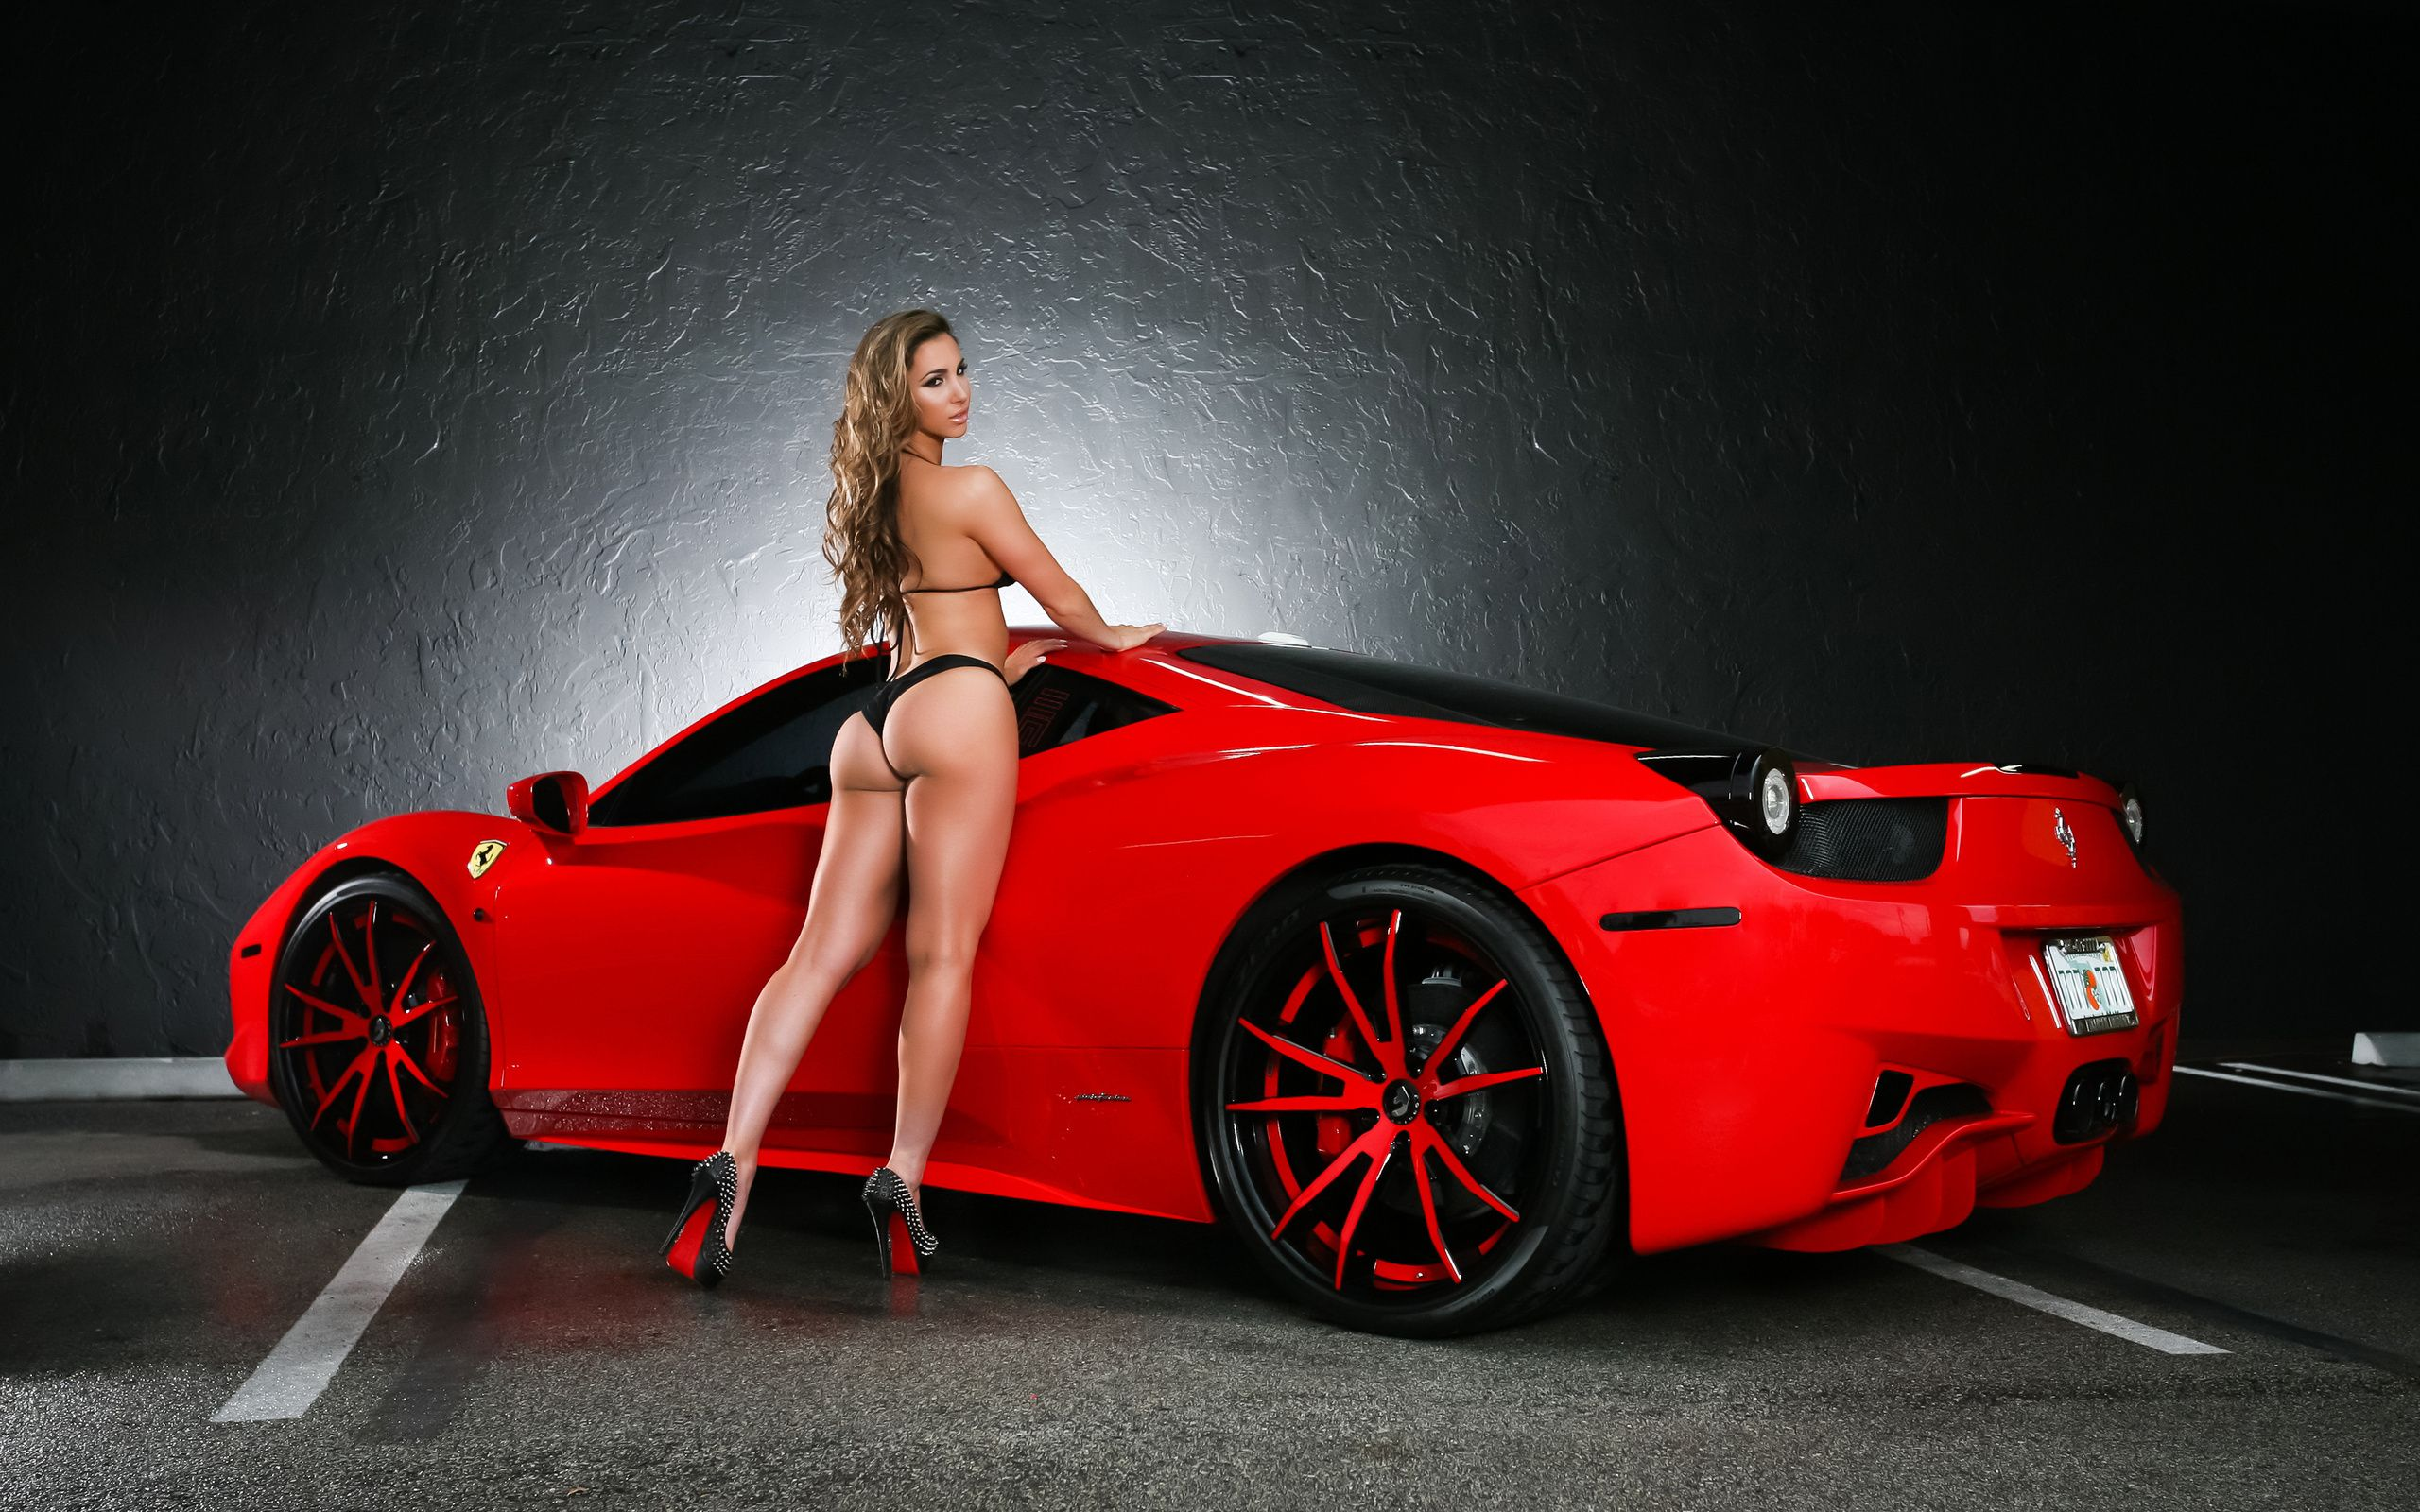 Hd girls nude naked cars you